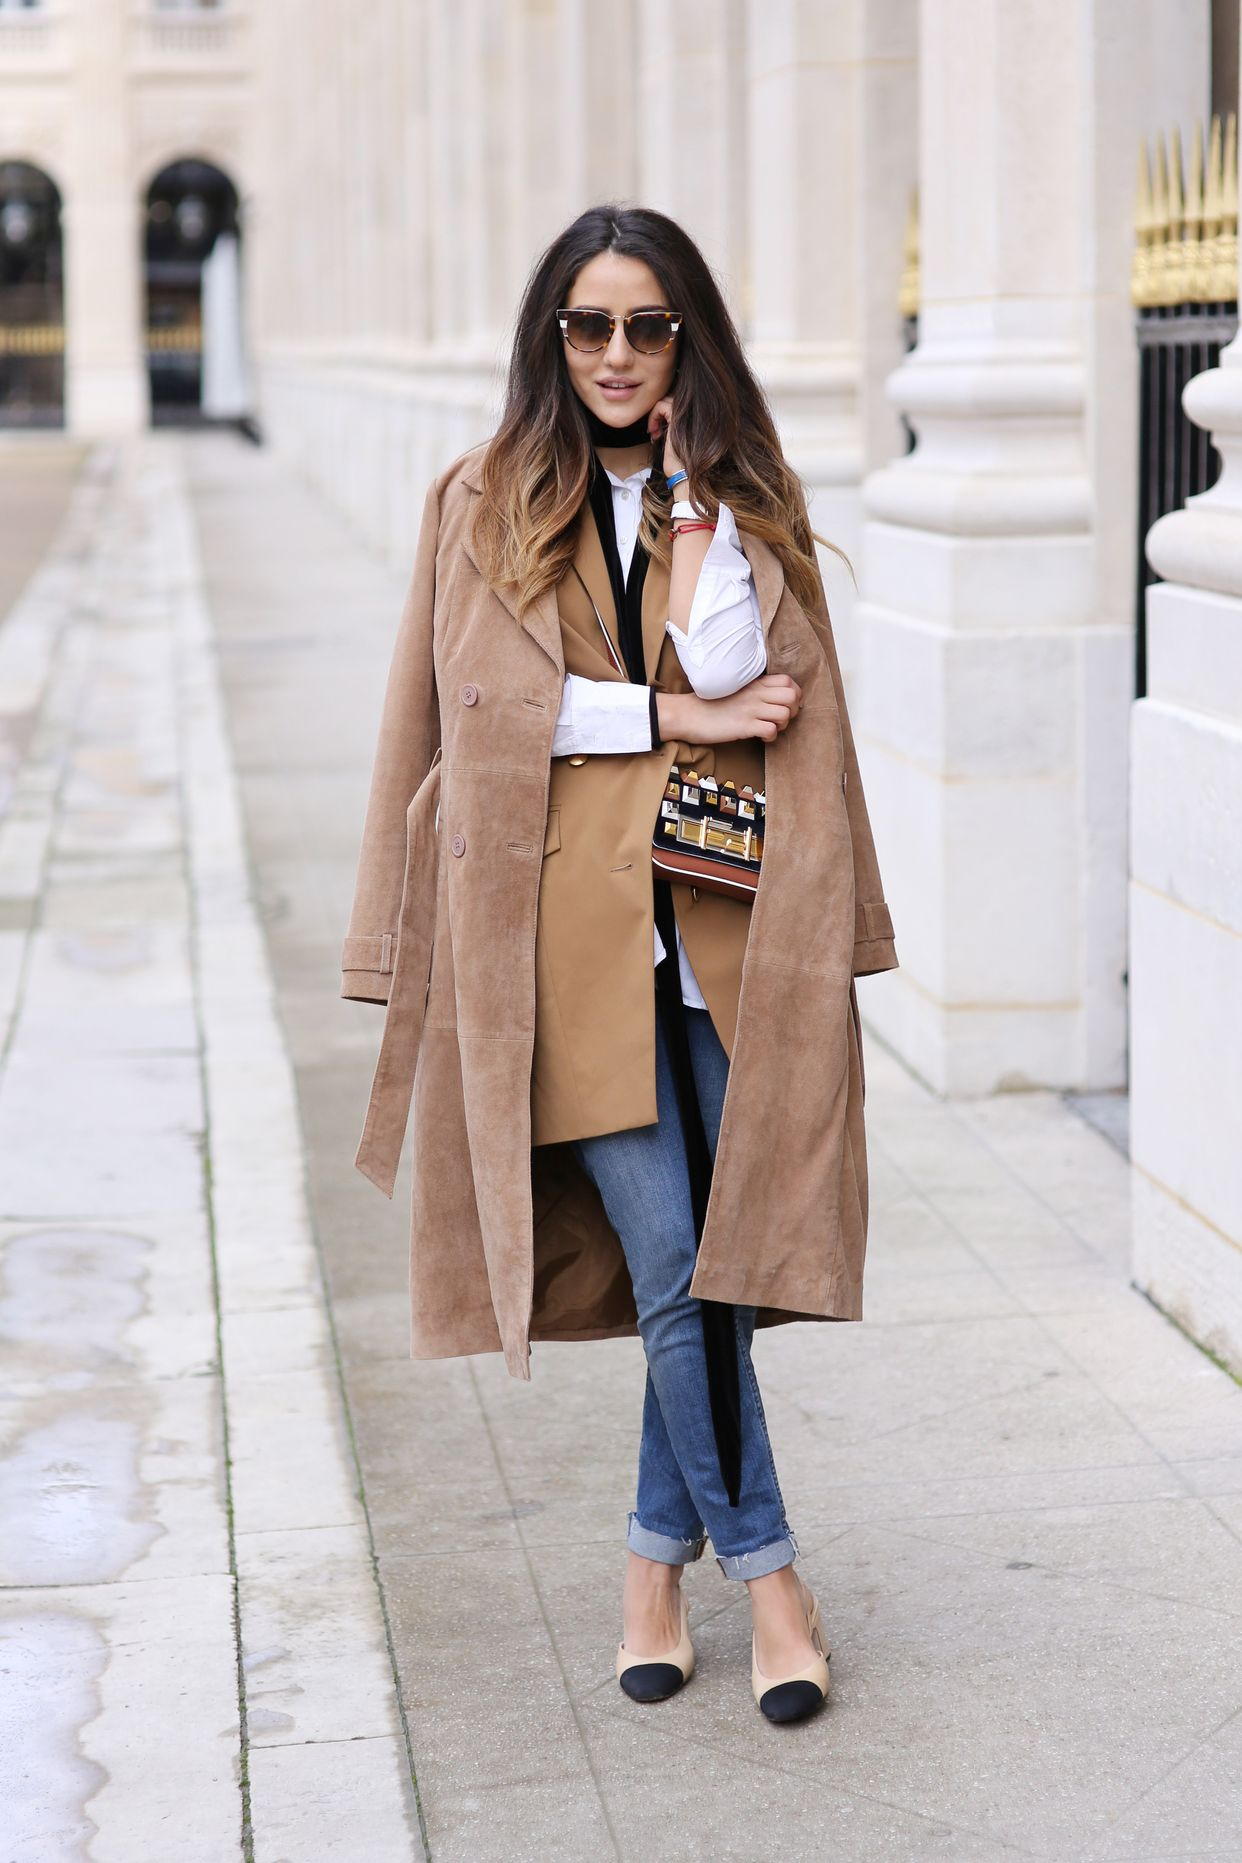 Layer a suede jacket ofver a camel blazer for extra warmth. (Photo: Glam & Glitter)